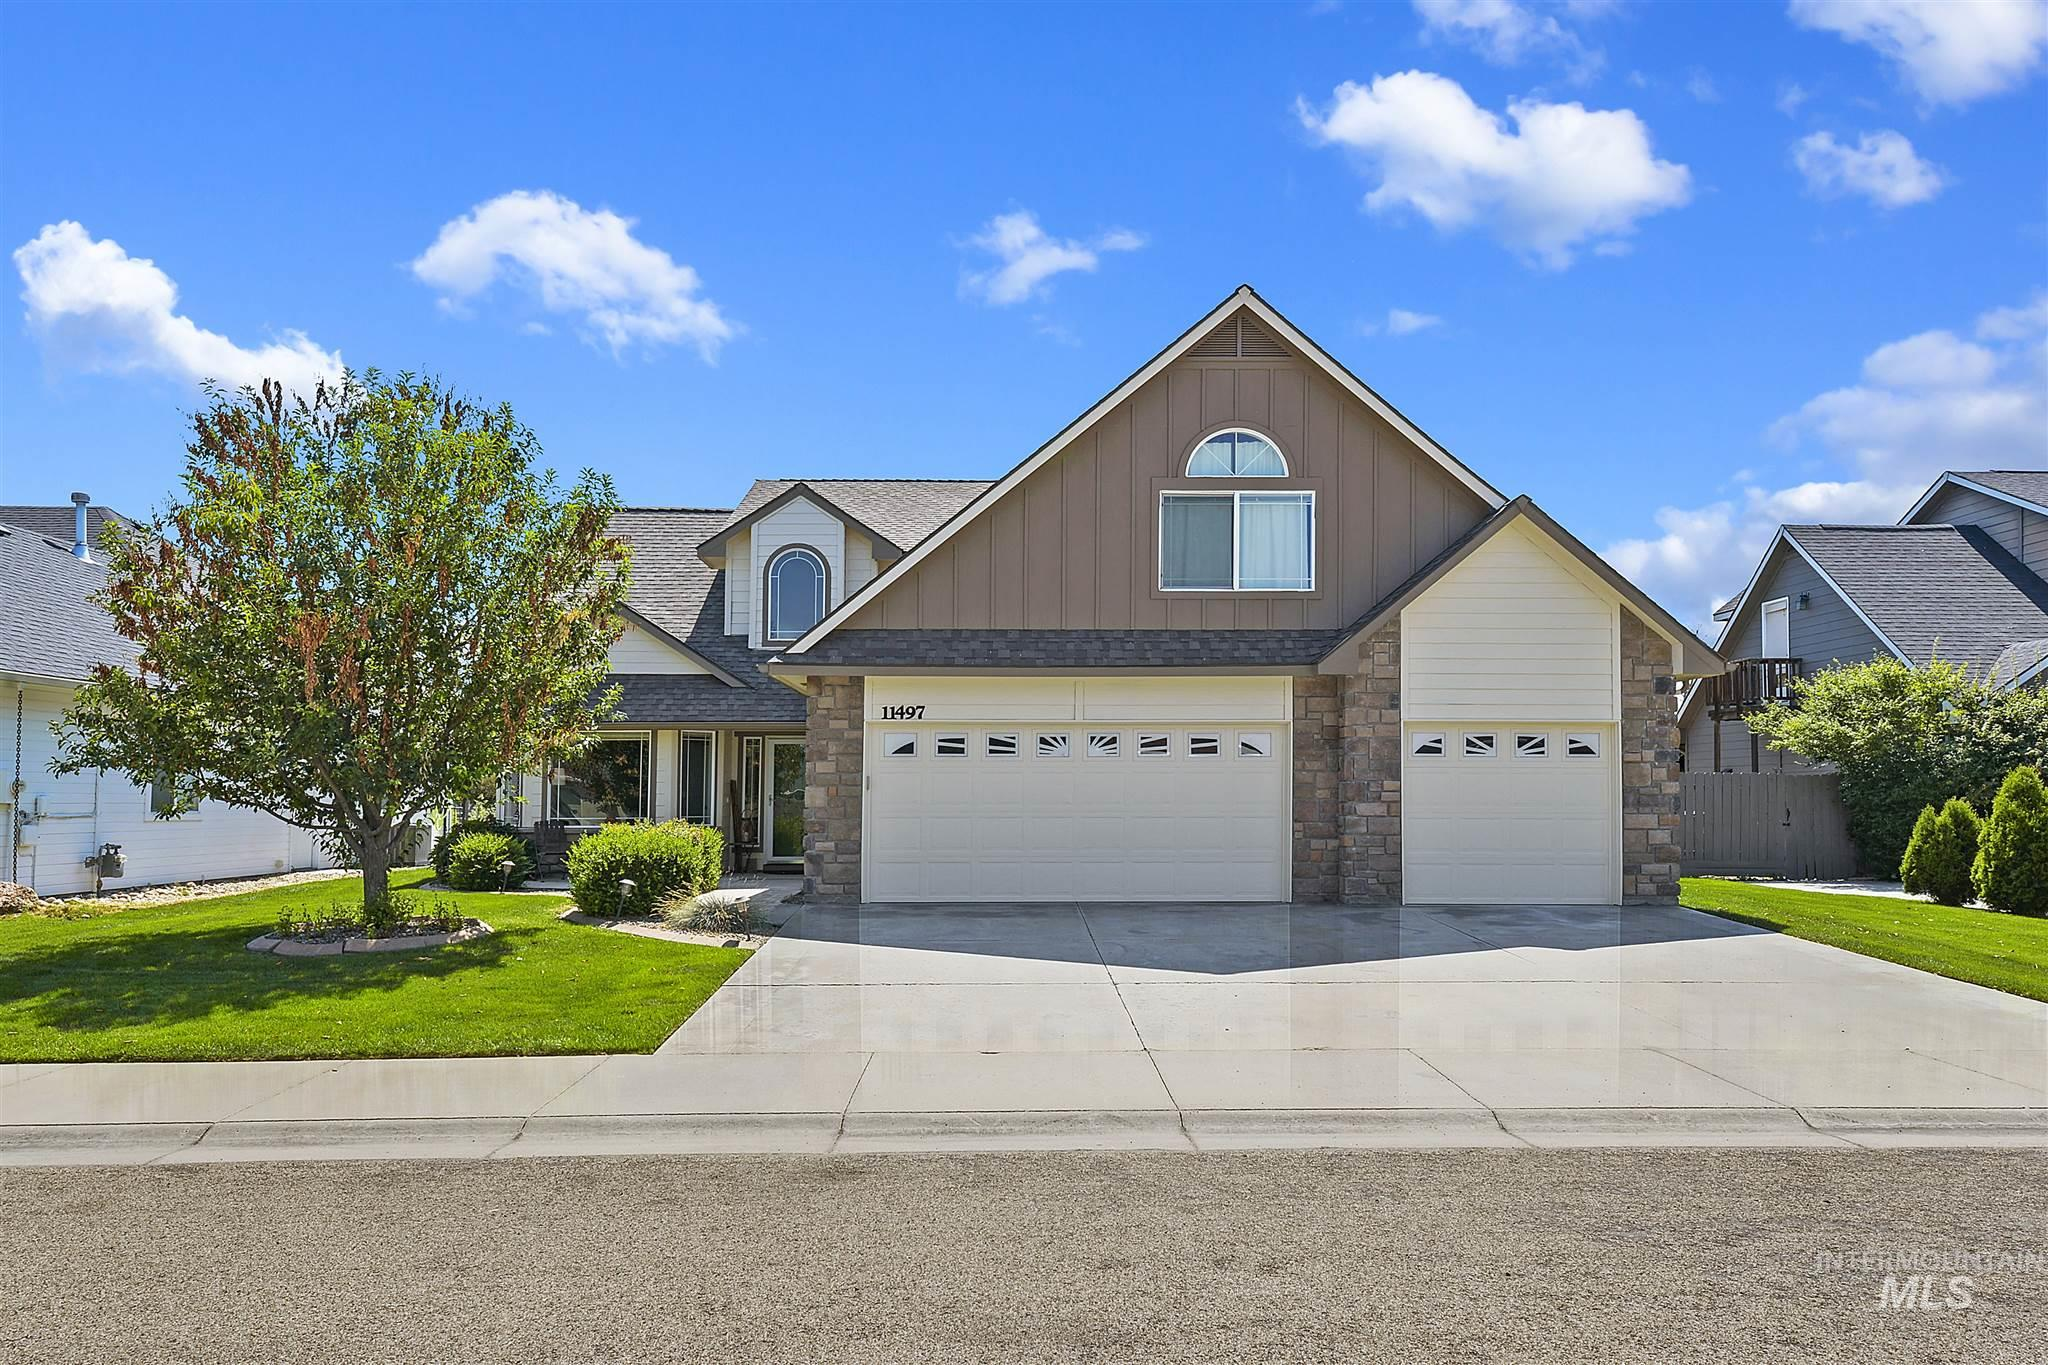 Photo for 11497 W Celestial Drive, Star, ID 83669 (MLS # 98775835)